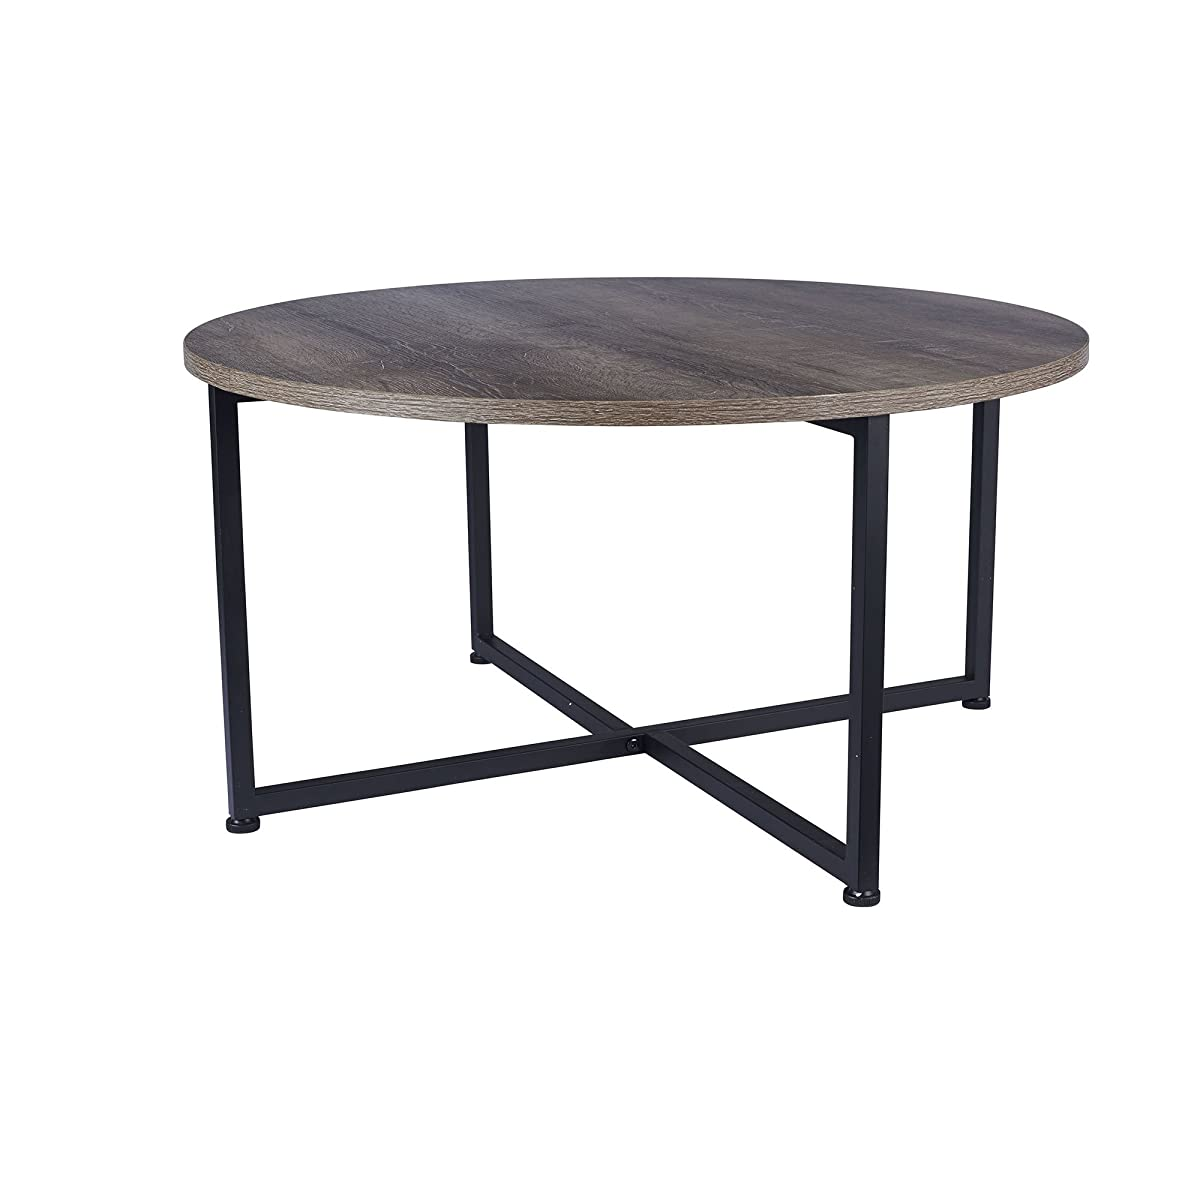 Household Essentials 8079-1 Ashwood Round Coffee Table | Distressed Gray-Brown | Black Metal Frame